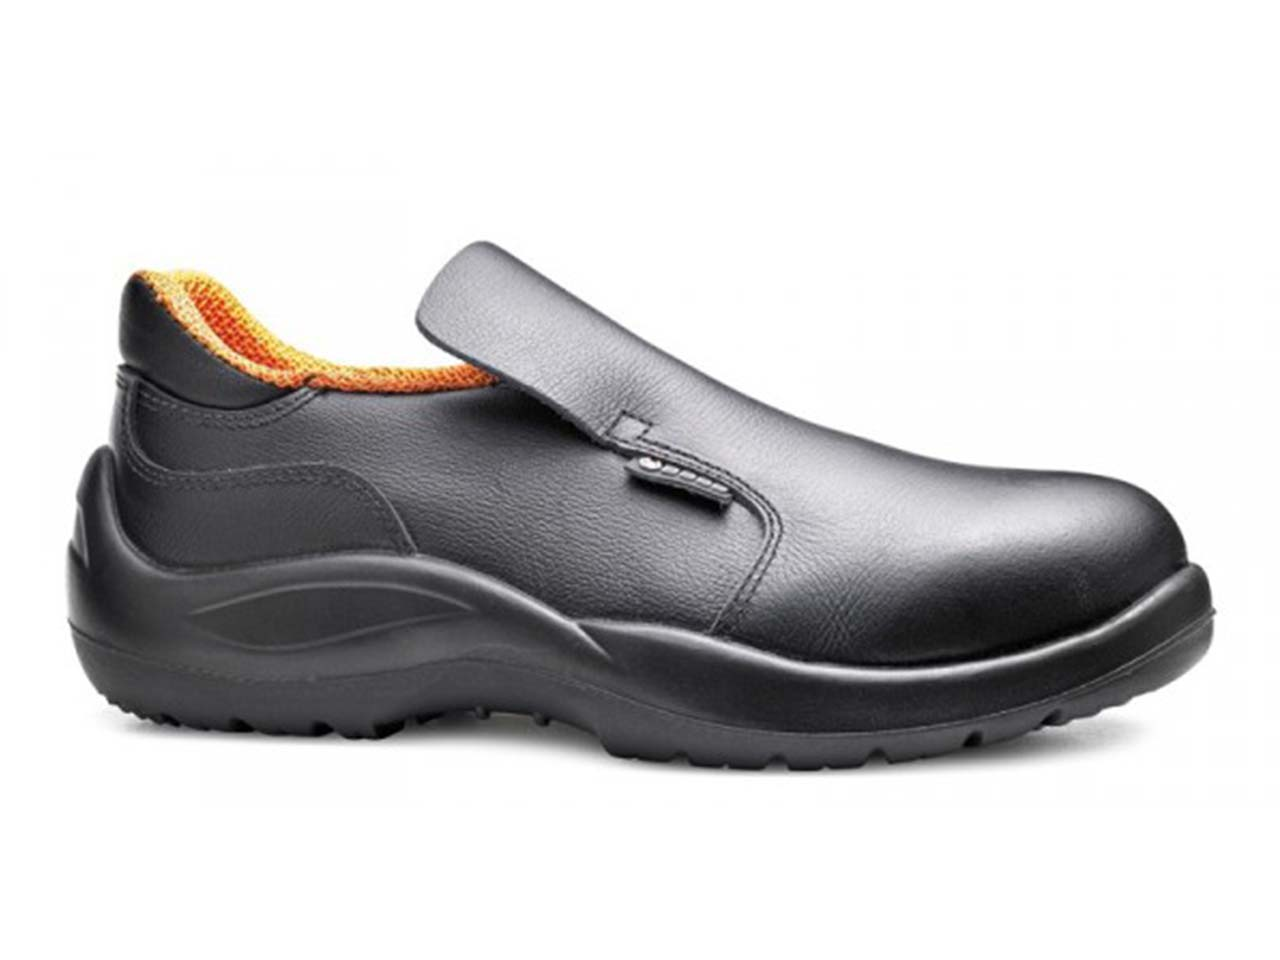 MOCASSINO CLORO S2 SRC NERO BASE PROTECTION B0507 BASE